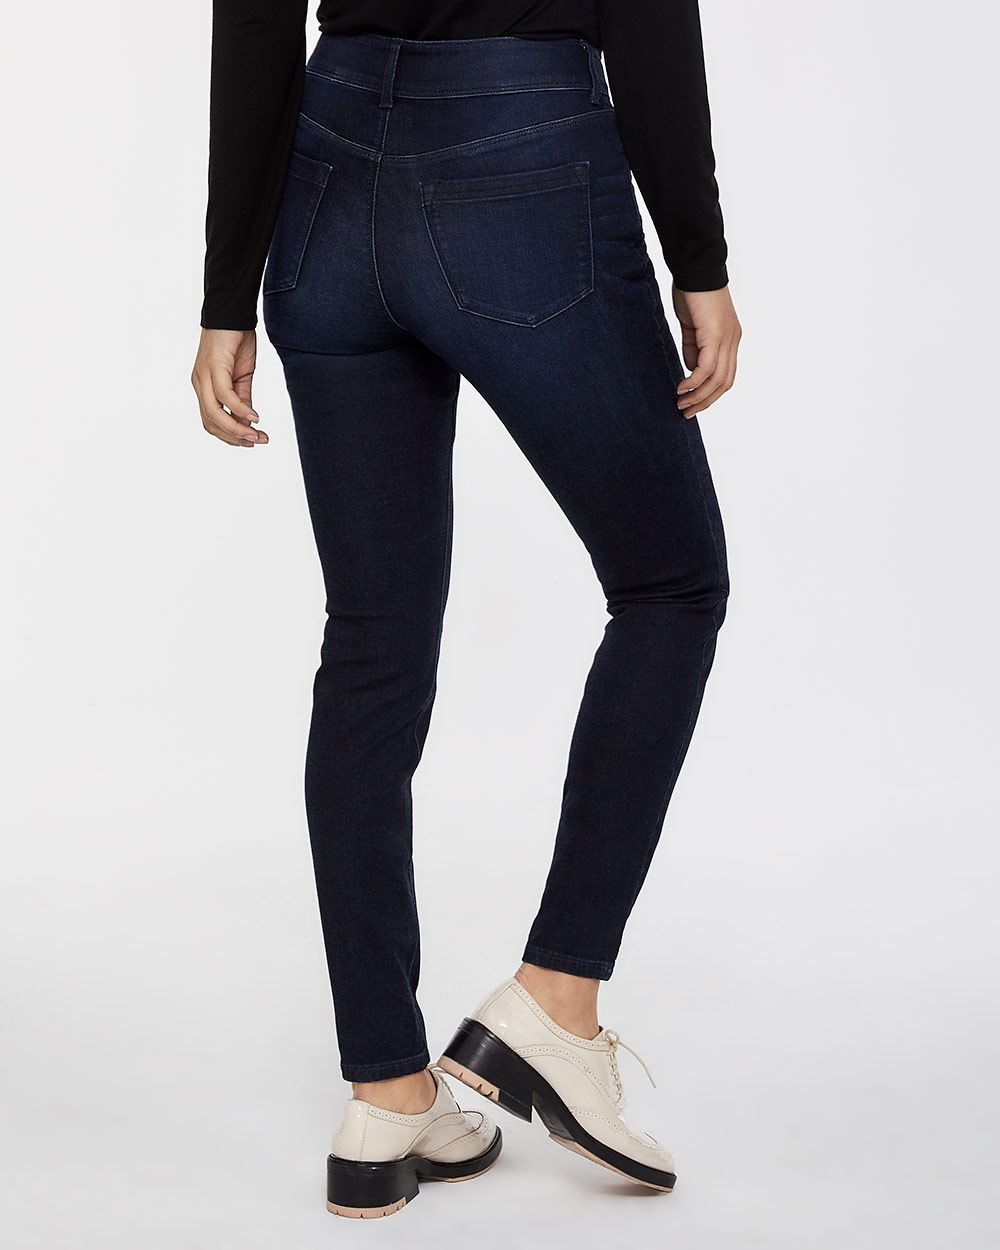 The Petite Urban Contour Double Shank Skinny Jeans